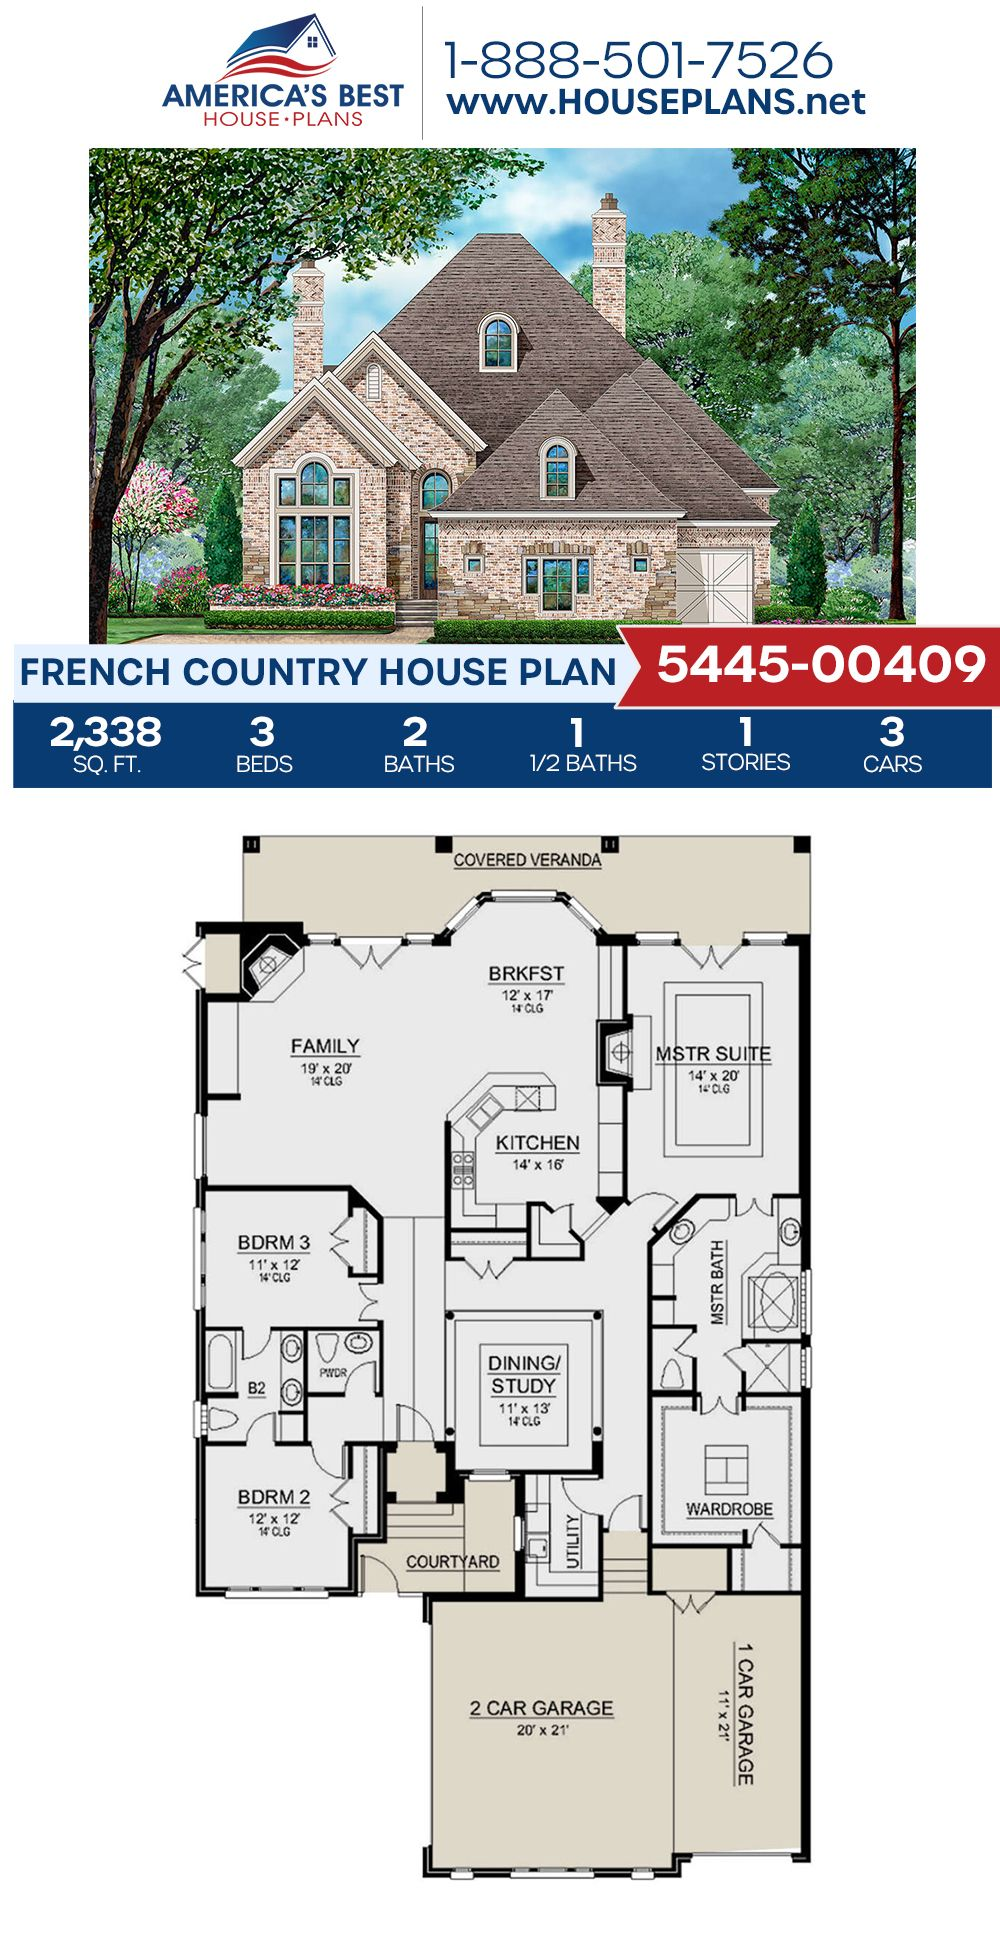 House Plan 5445 00409 French Country Plan 2 338 Square Feet 3 Bedrooms 2 5 Bathrooms French Country House Plans Porch House Plans French Country House